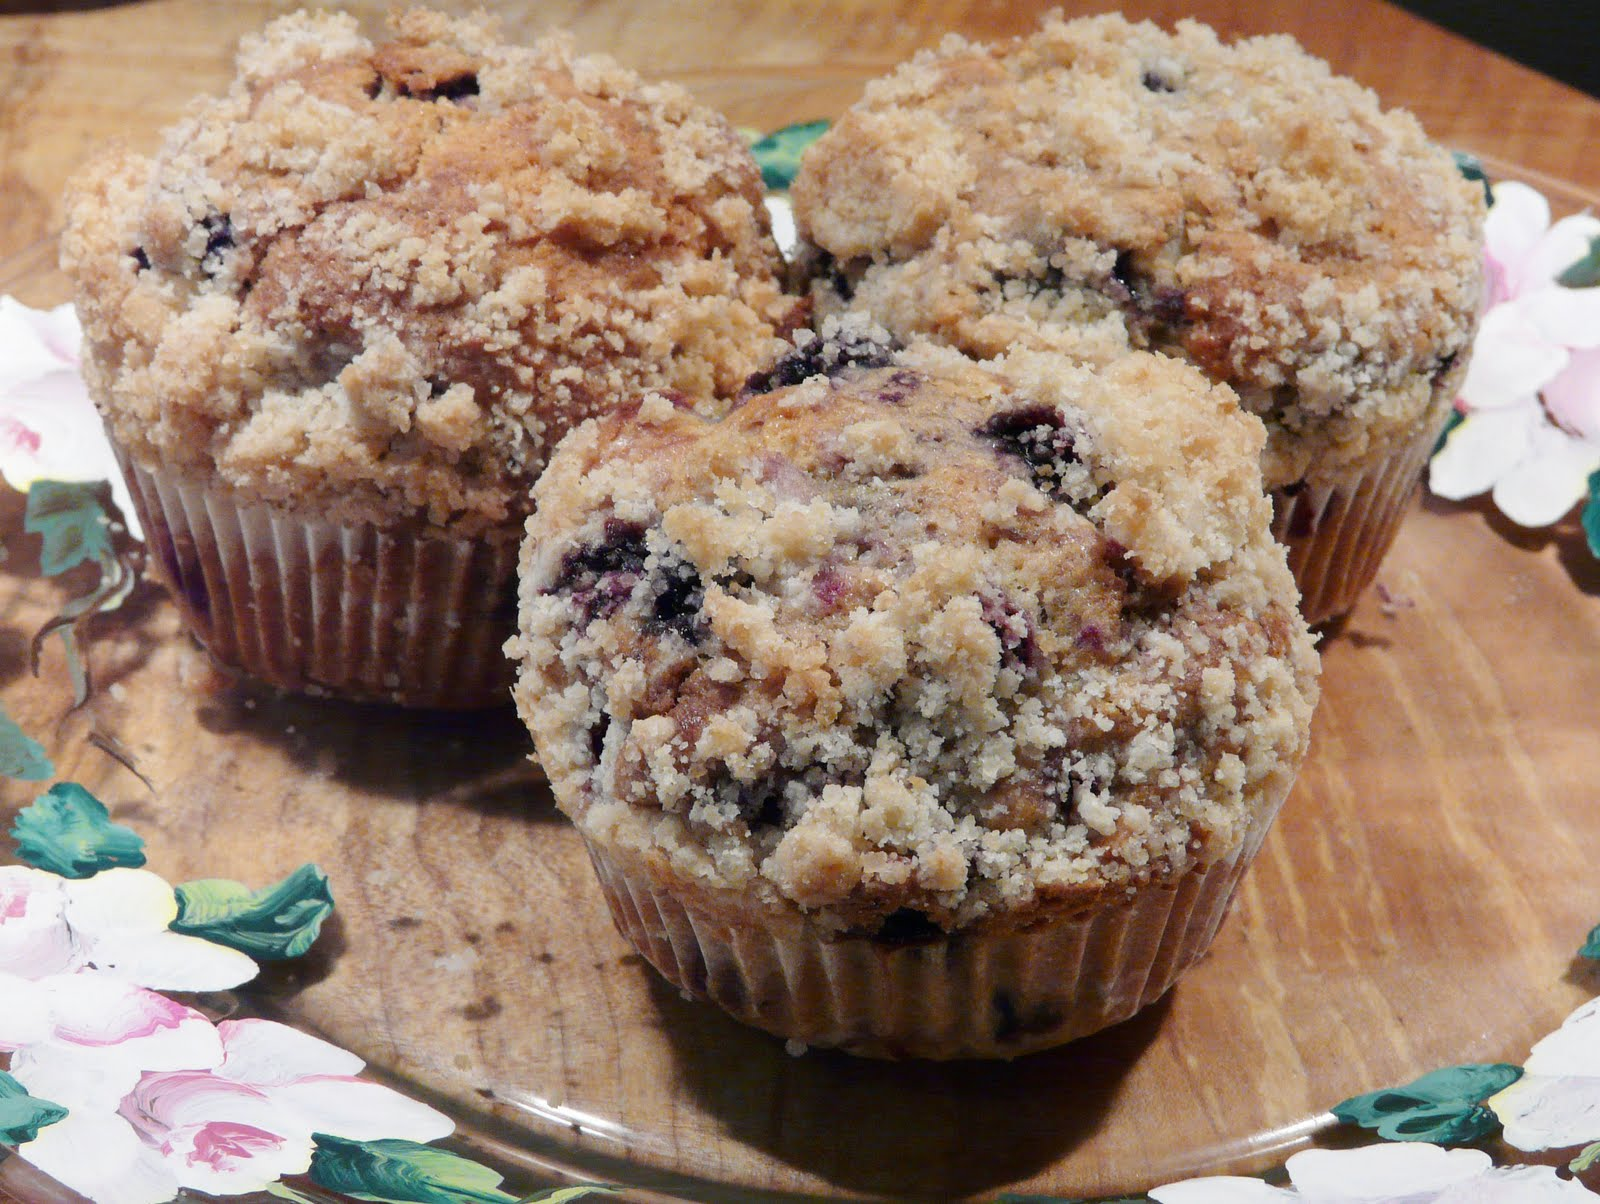 Thibeault's Table: Browned Butter Blueberry Muffins